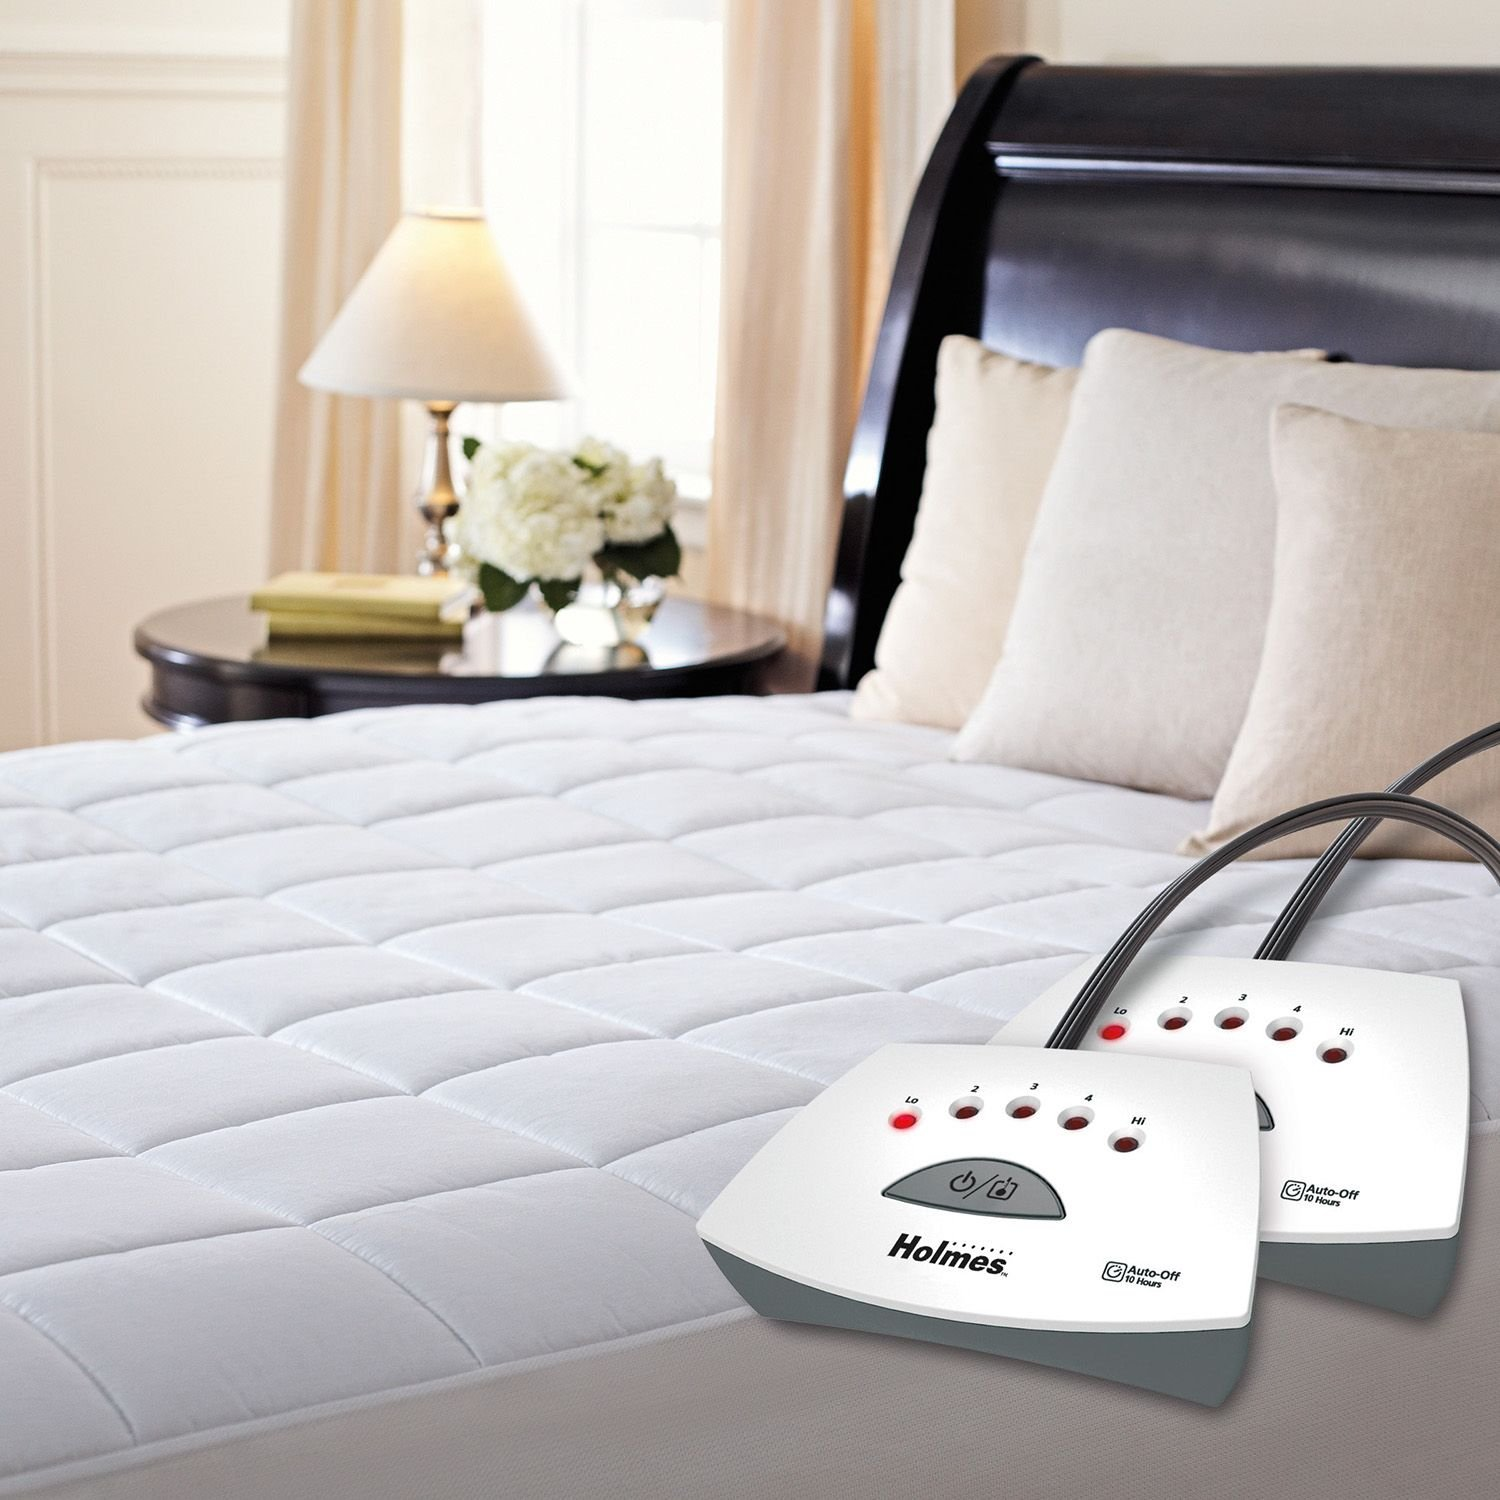 Holmes Premium Quilted Electric Heated Mattress Pad - Queen Size 71LDmPoEq3L._SL1500_